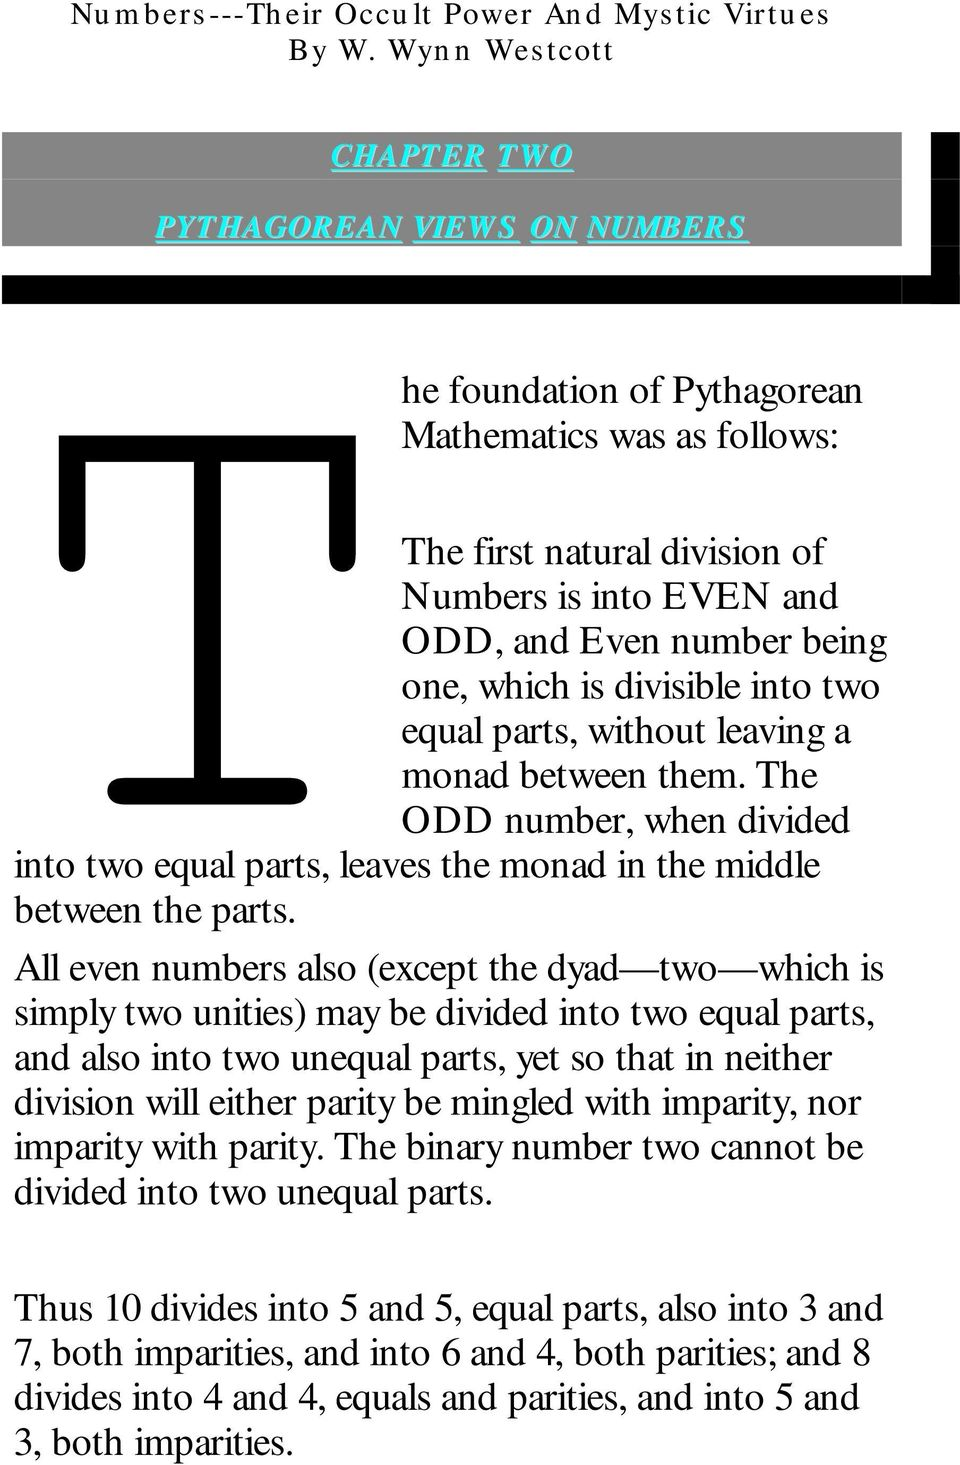 All even numbers also (except the dyad two which is simply two unities) may be divided into two equal parts, and also into two unequal parts, yet so that in neither division will either parity be